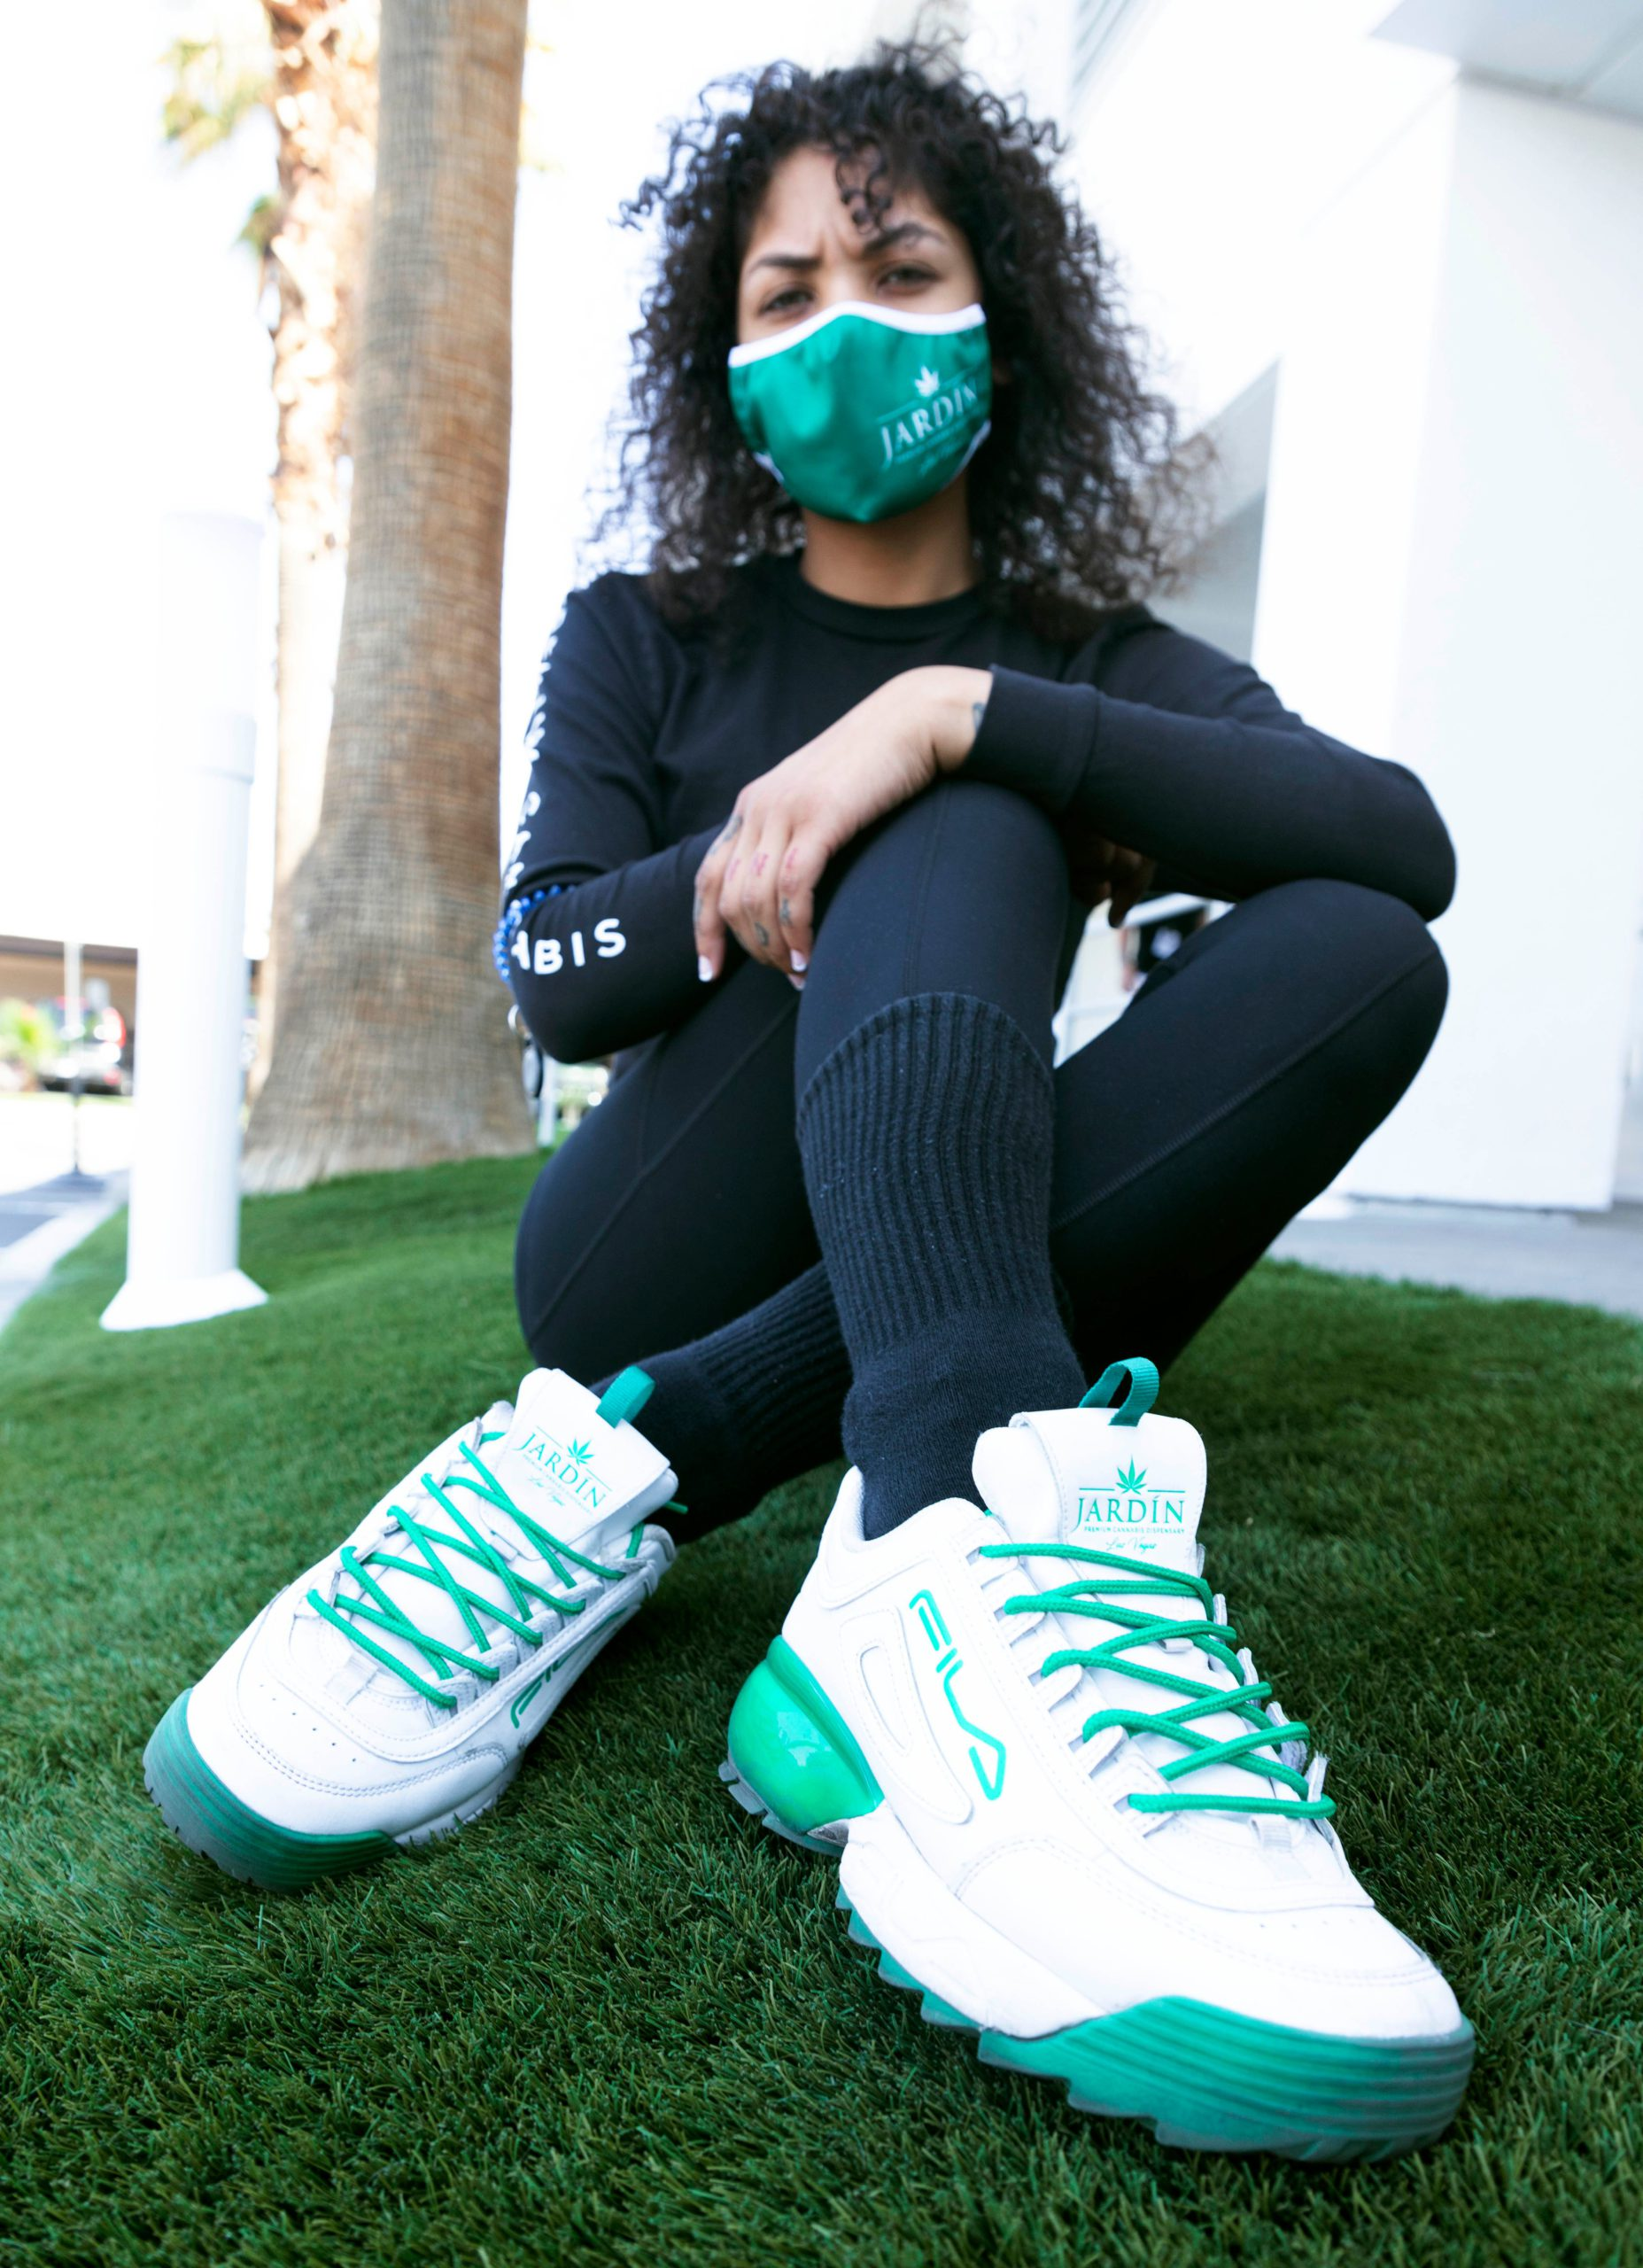 Exclusive FILA shoes created in collaboration with Jardin Premium Cannabis Dispensary